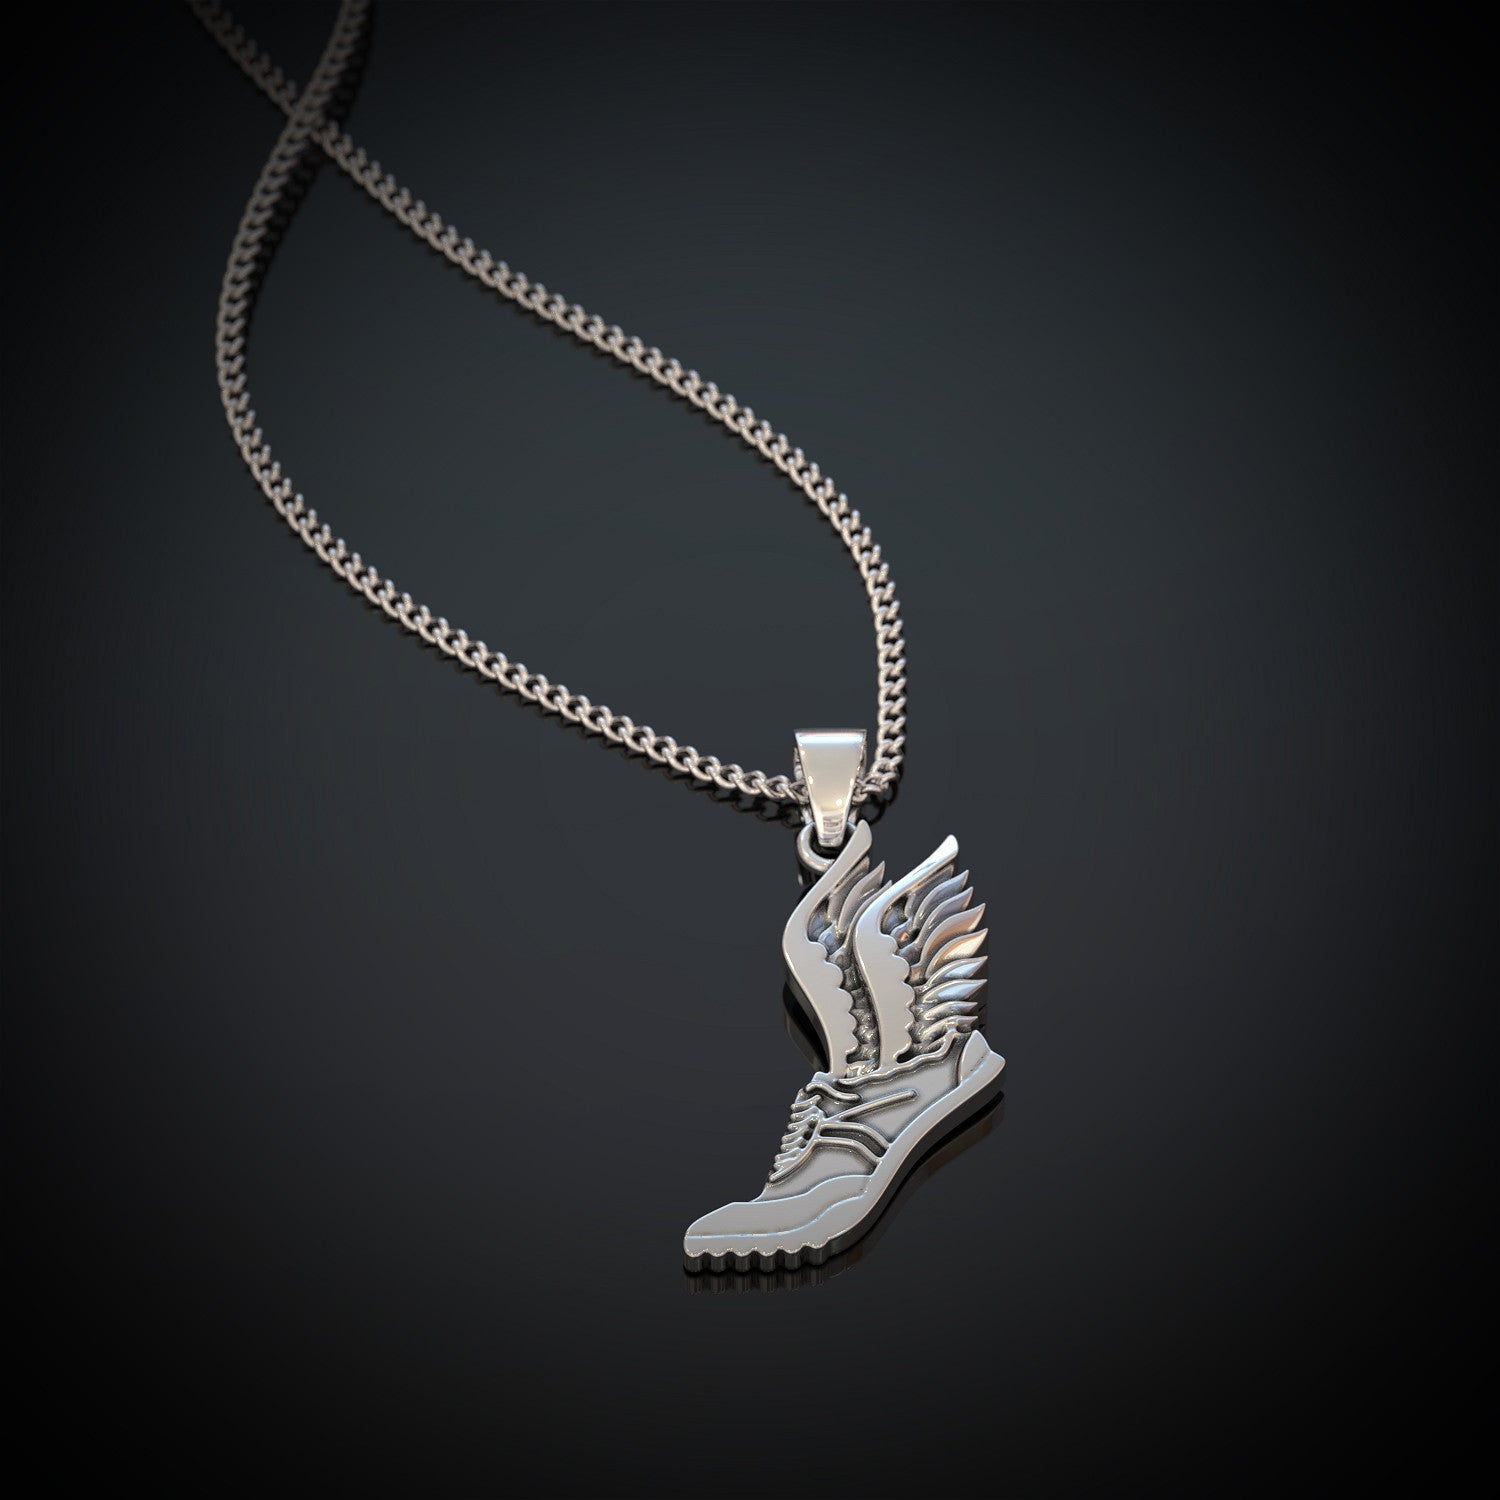 Runner's Necklace